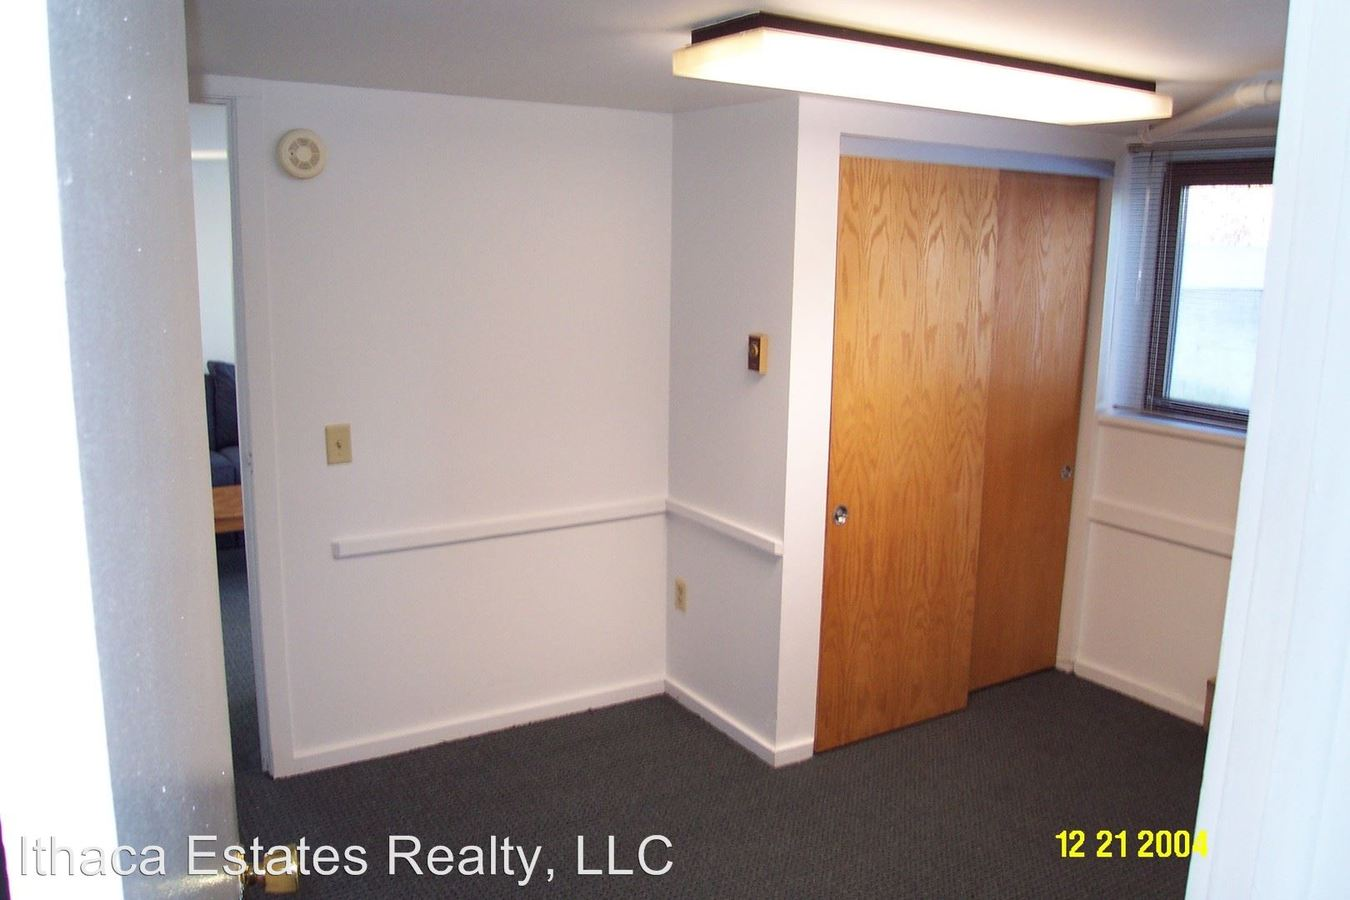 1 Bedroom 1 Bathroom Apartment for rent at Ithaca Estates Properties, Llc 1060 Danby Rd. in Ithaca, NY